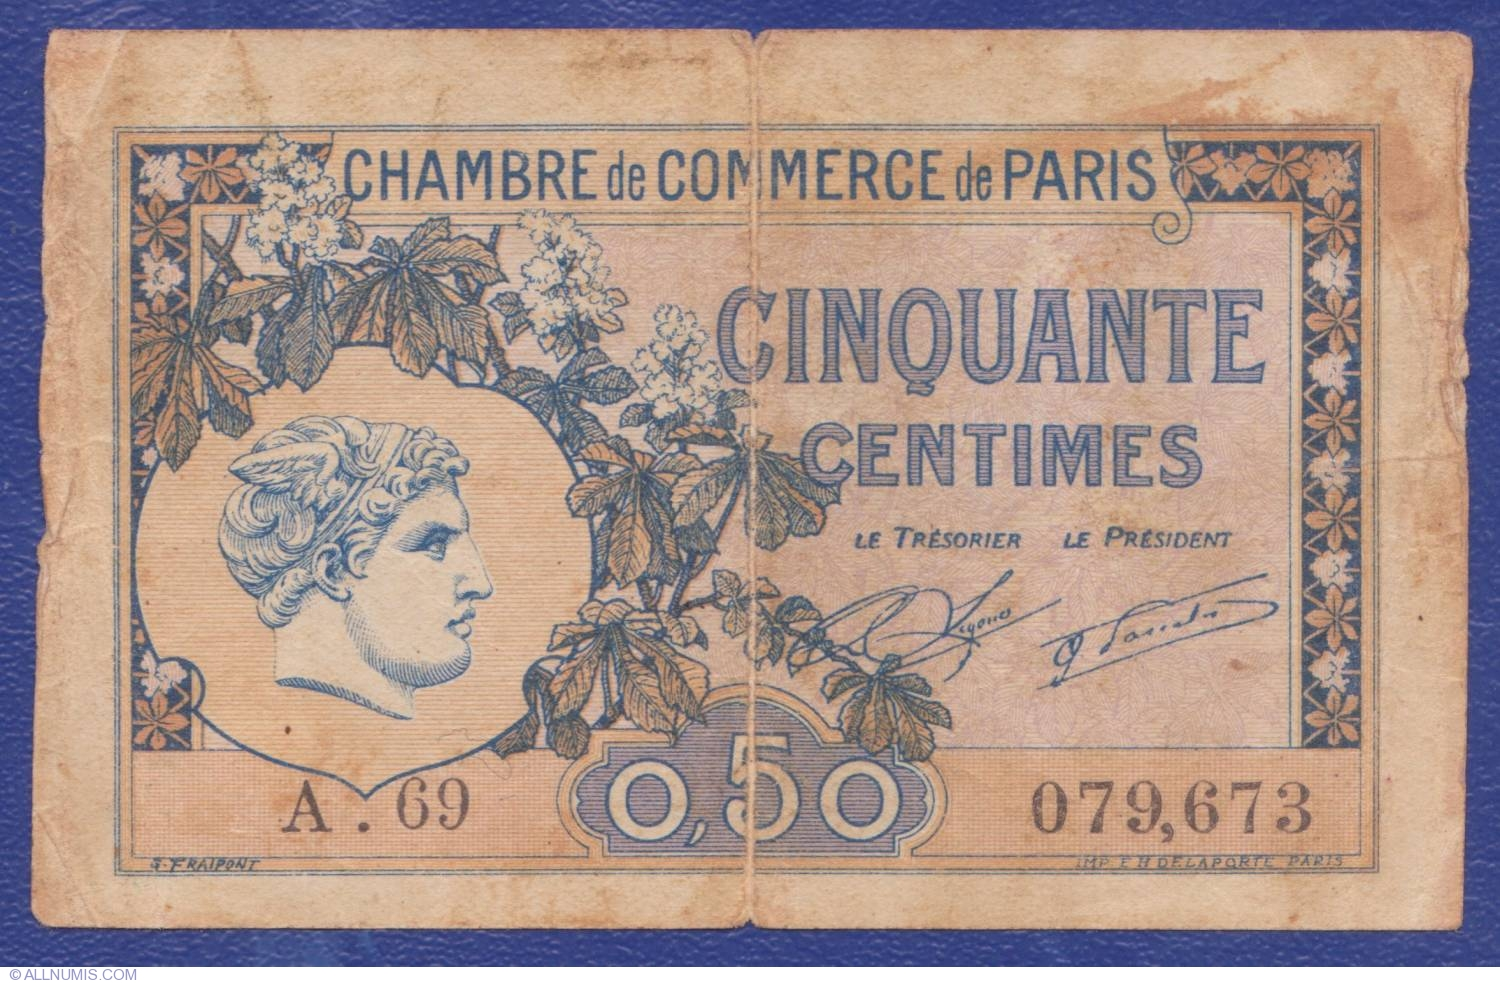 50 centimes 1920 paris chambre de commerce france for Chambre de commerce de paris arbitrage